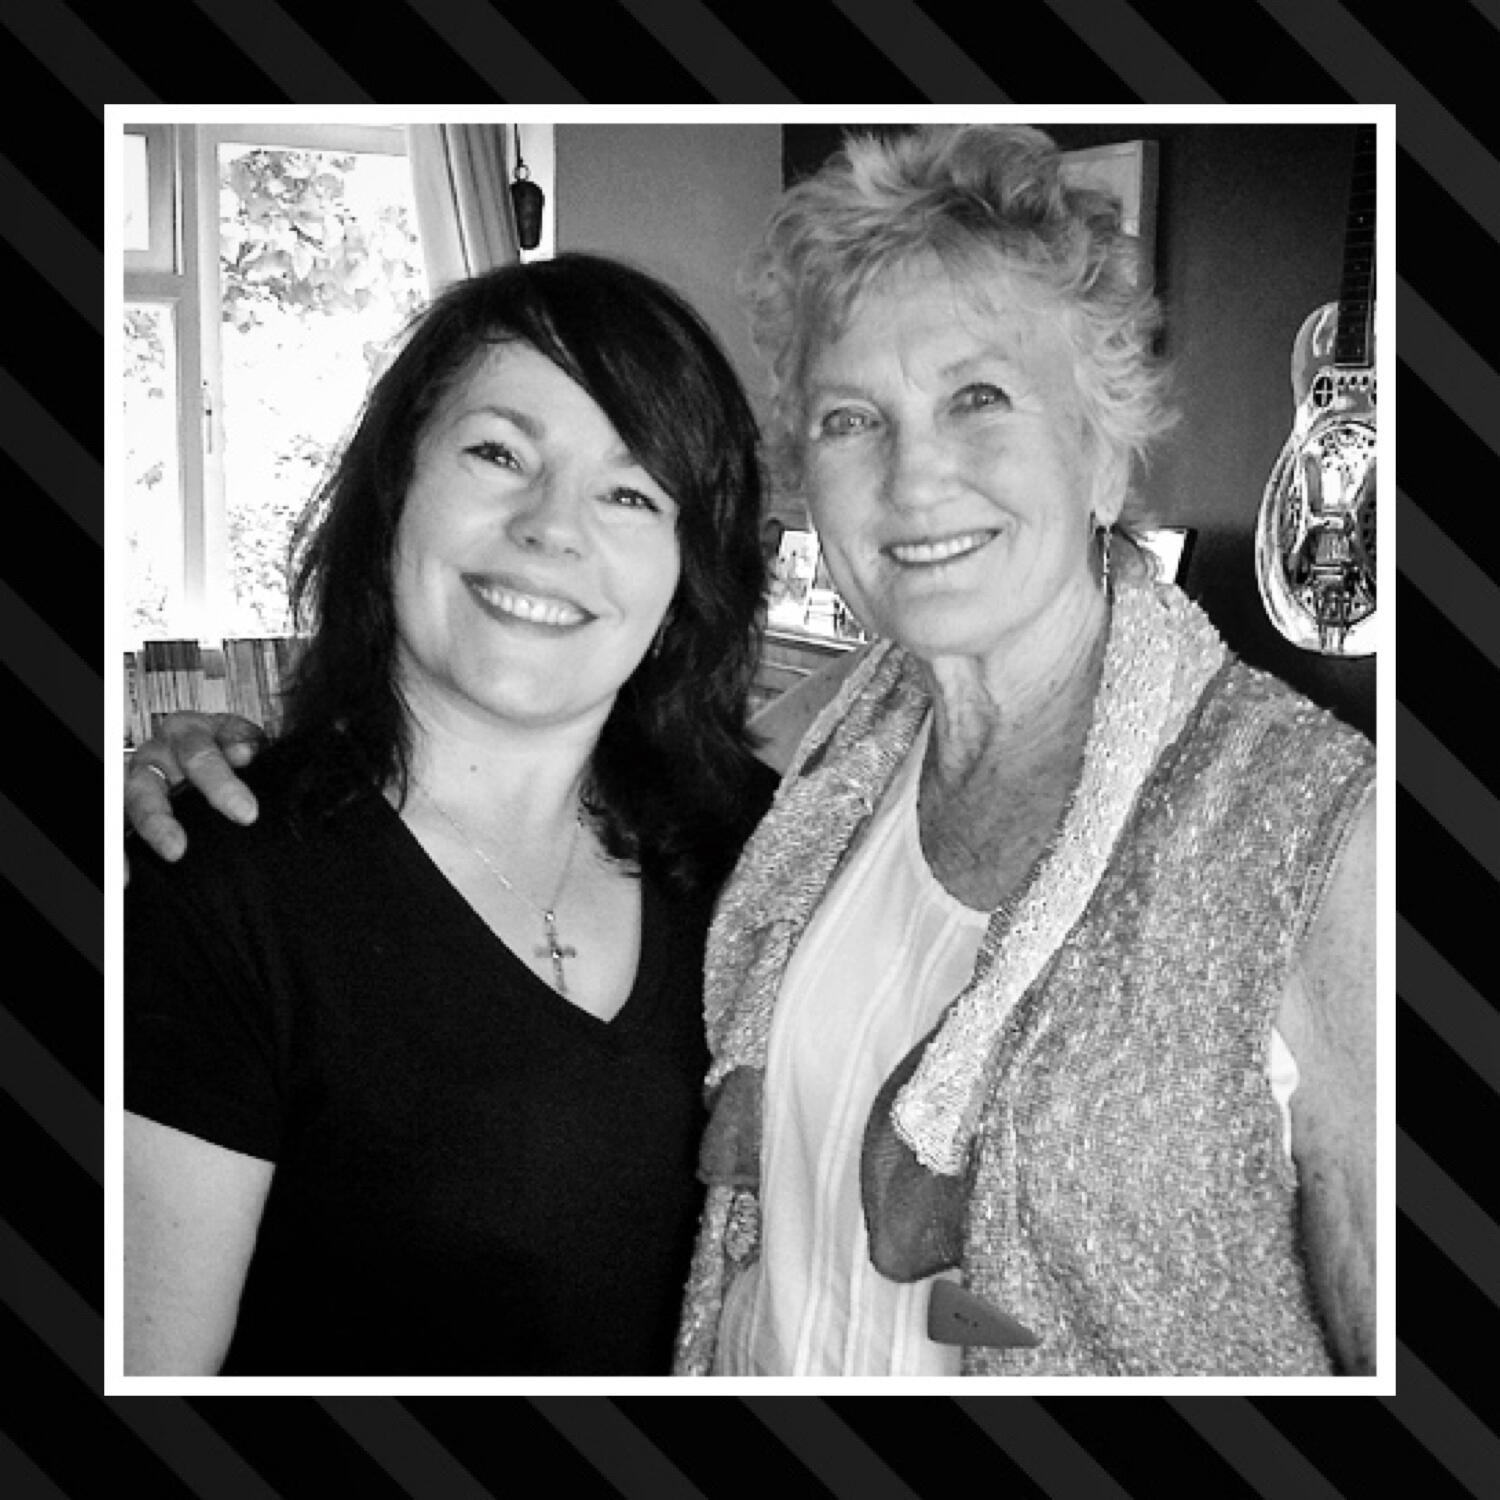 62: The one with Peggy Seeger